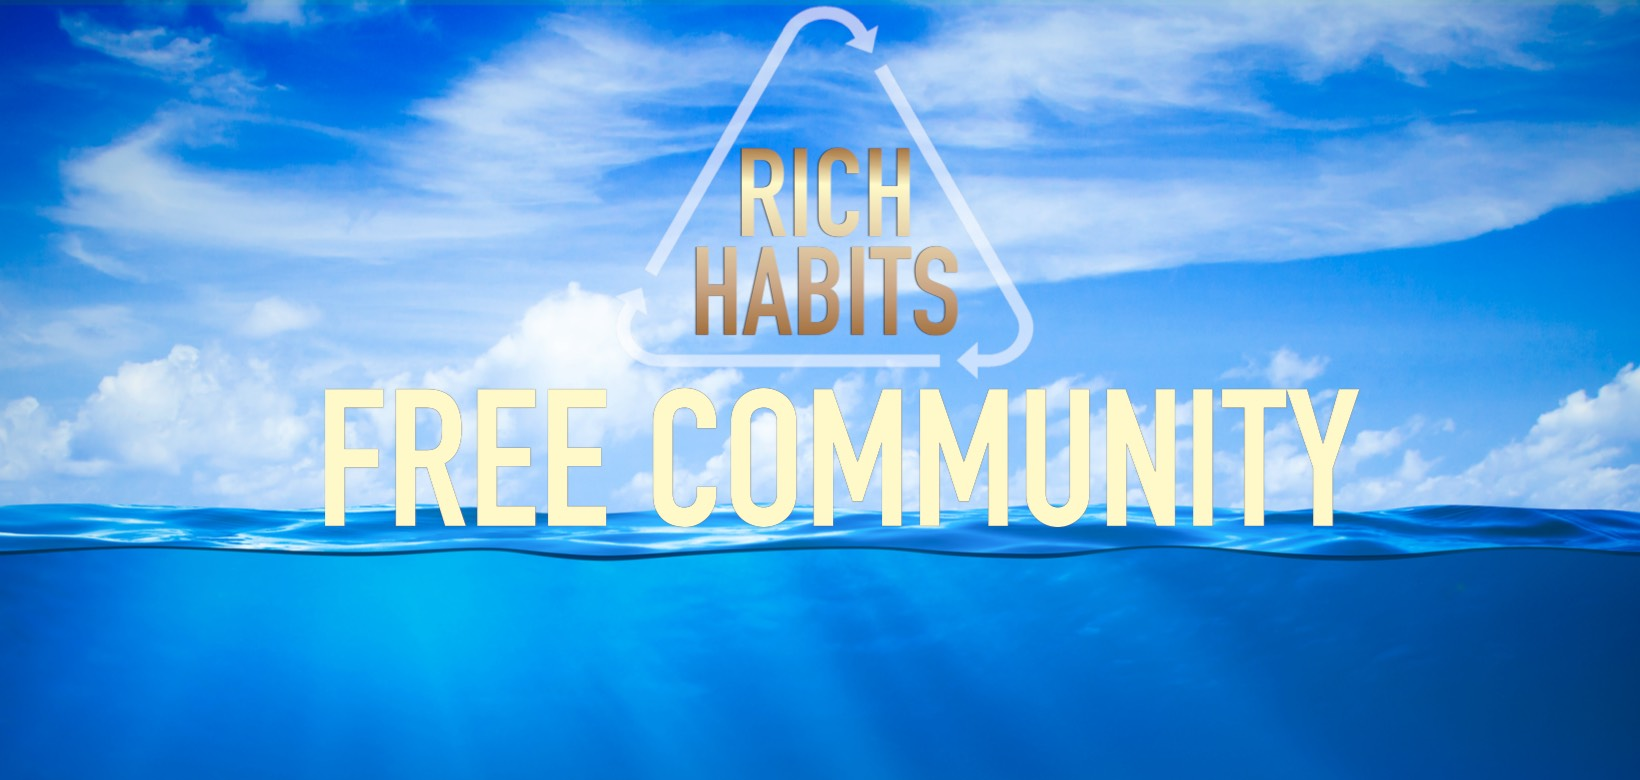 Facebook - Rich habits FREE Community Banner.jpg